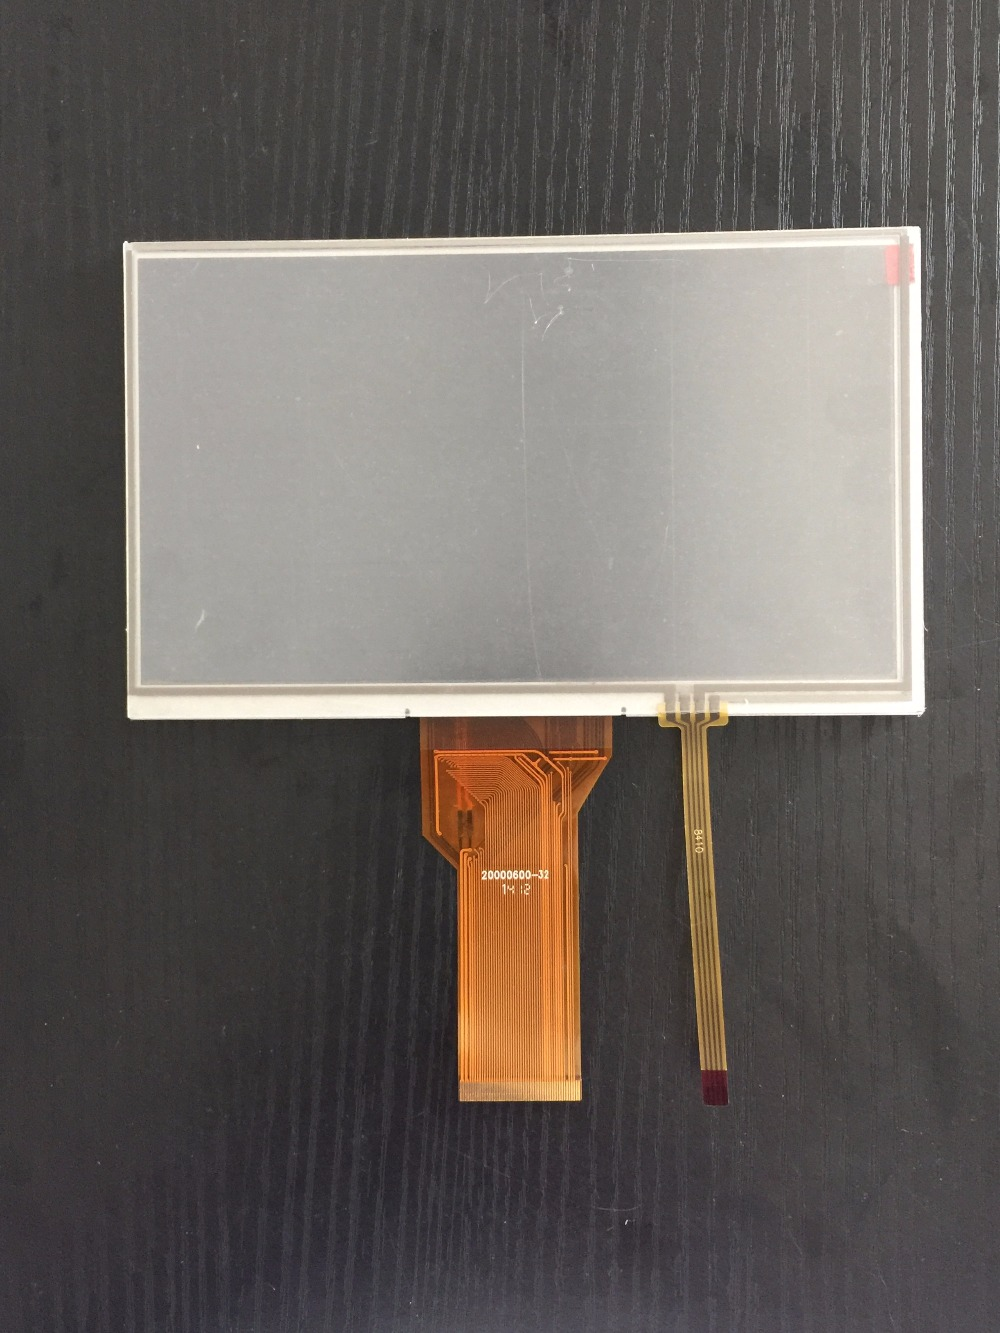 165mm 100mm 7 Inch 800x480 TFT LCD Display 400 Nits High Brightness With RTP Touch